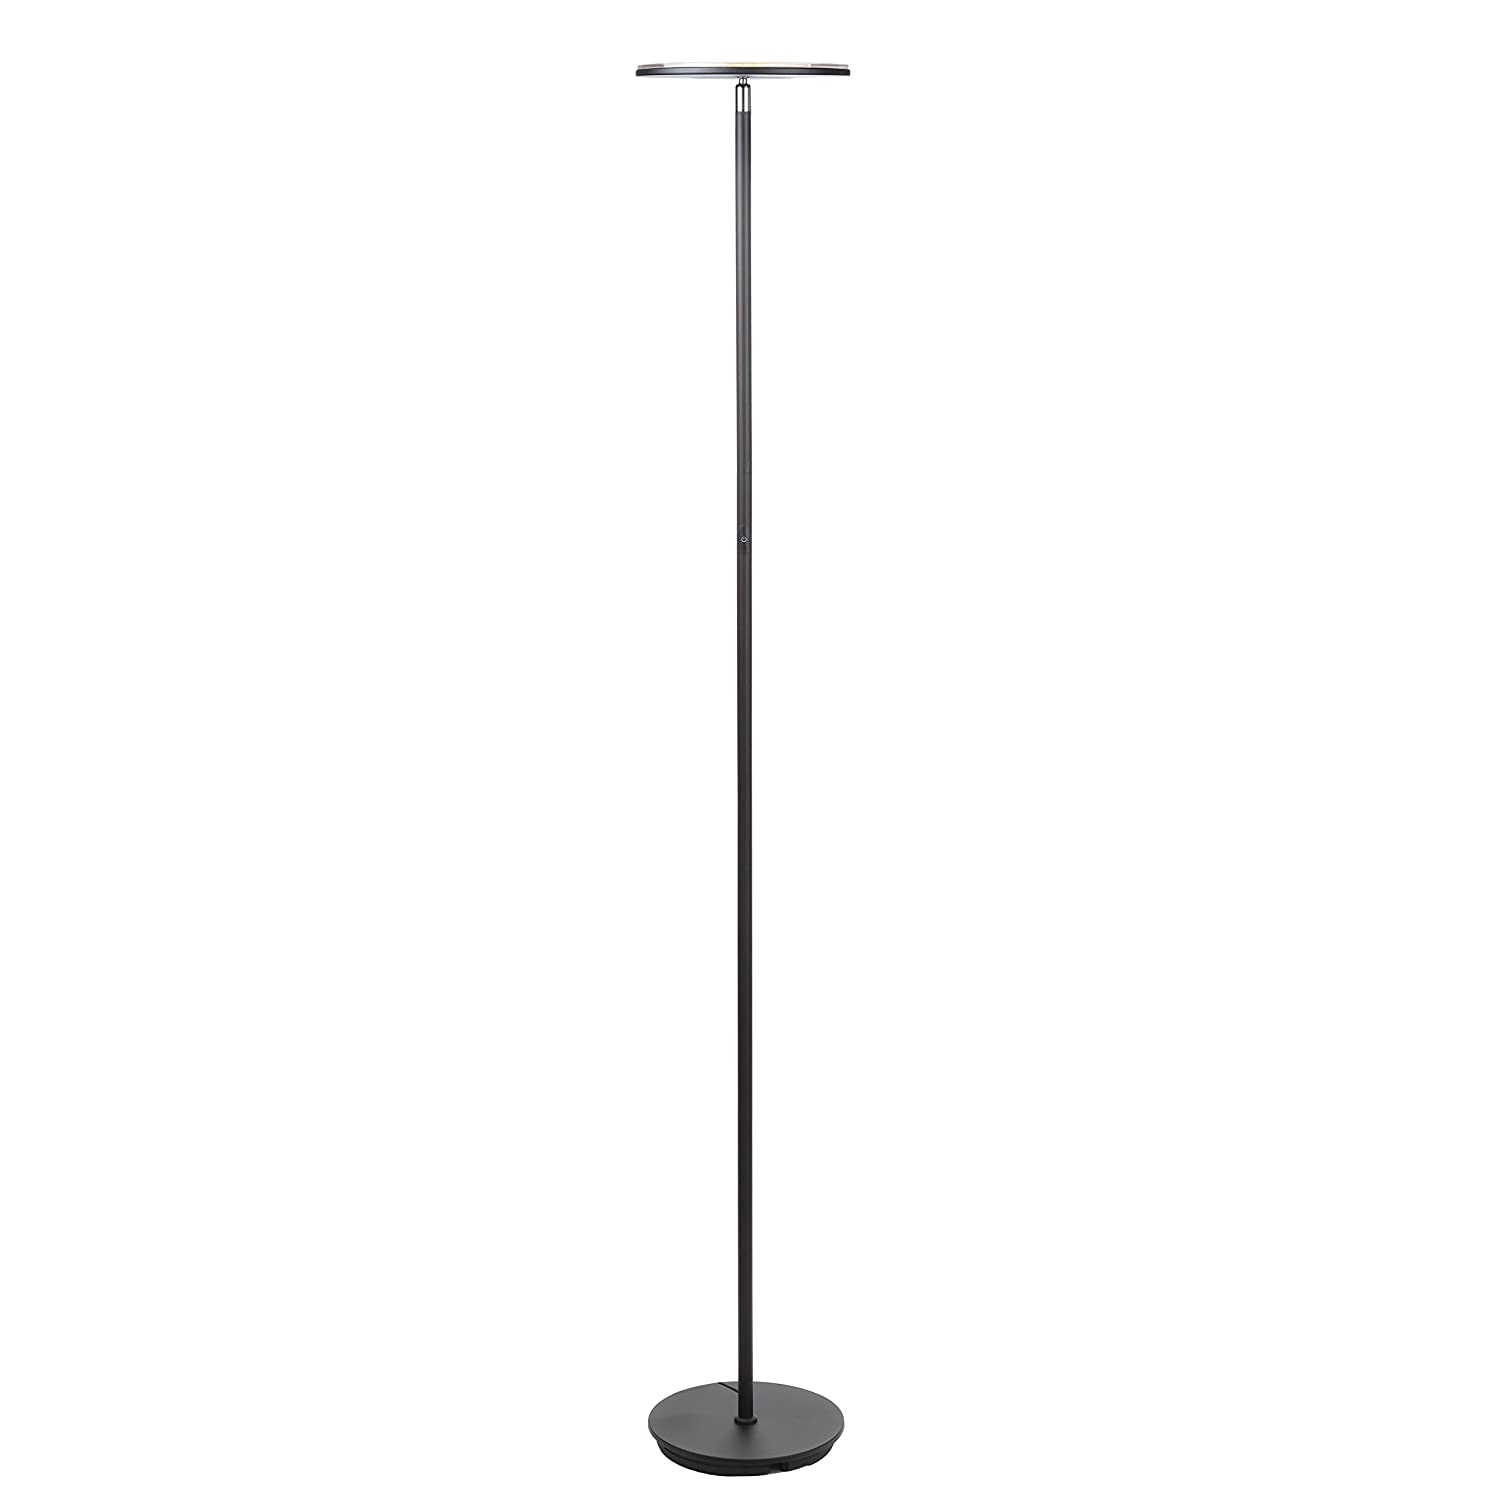 Brightech SKY LED Torchiere Floor Lamp U2013 Energy Saving, Dimmable Adjustable  Lamp, Reading Lamp